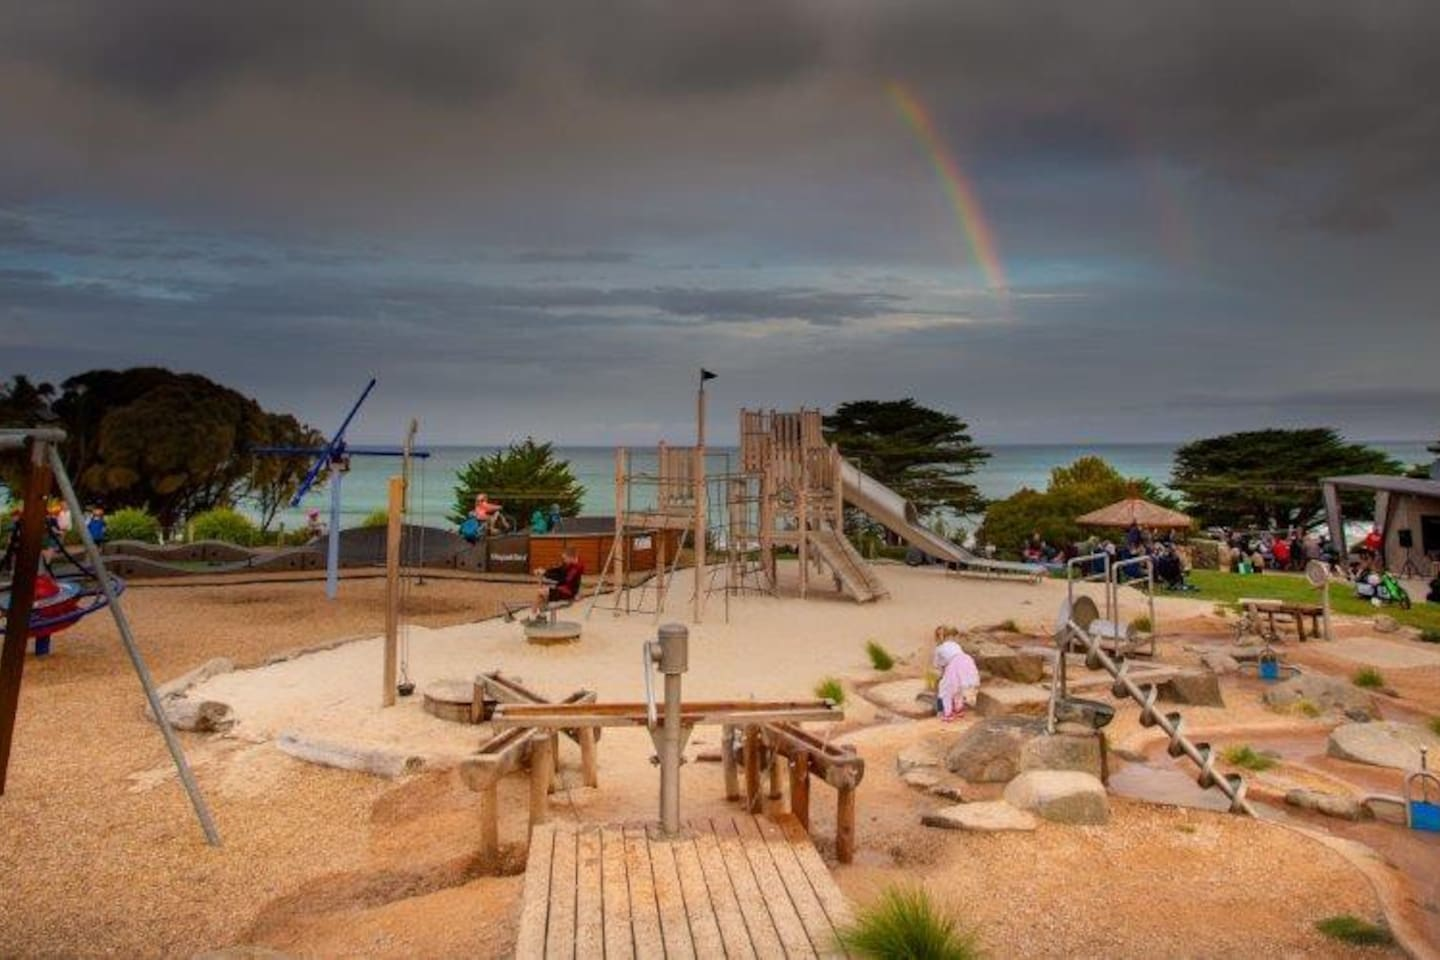 You have full access to our open Fire, BBQ and play ground area overlooking the ocean